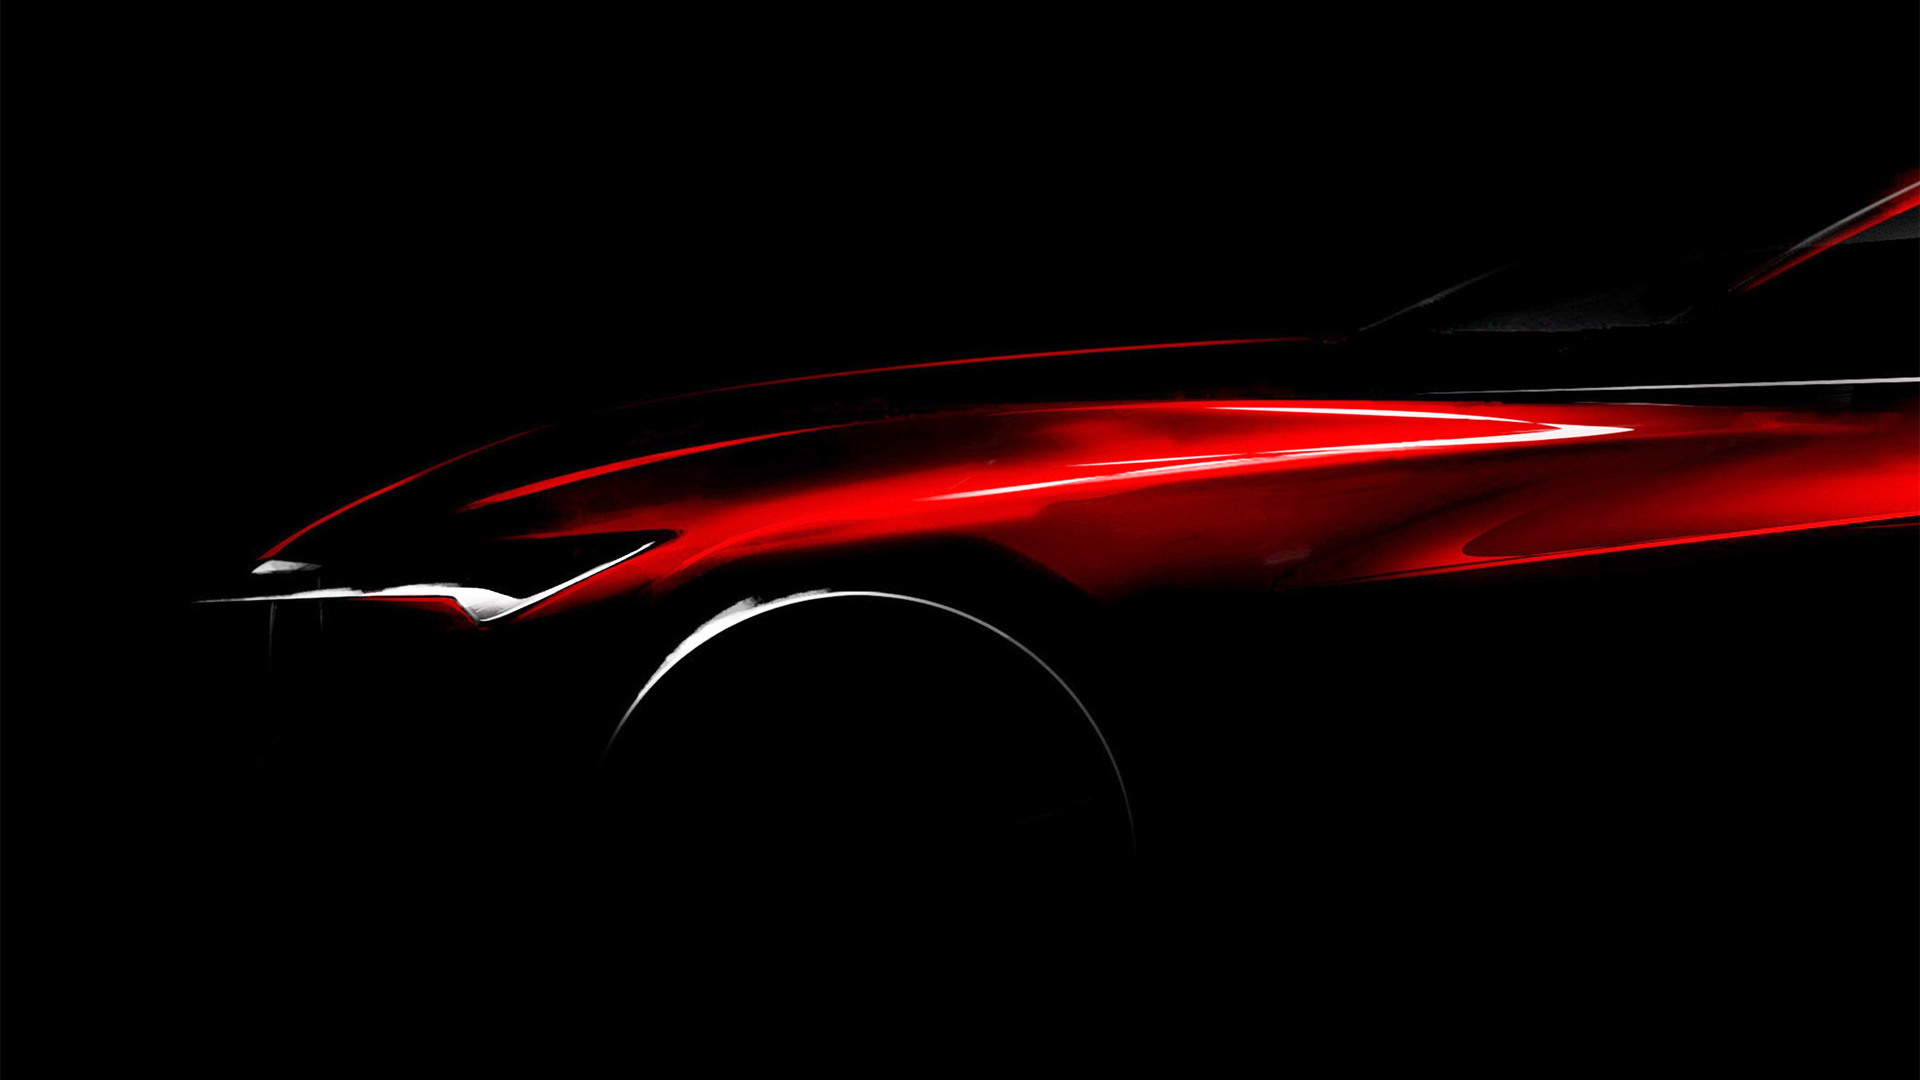 Teaser for Acura Precision concept debuting at 2016 Detroit Auto Show